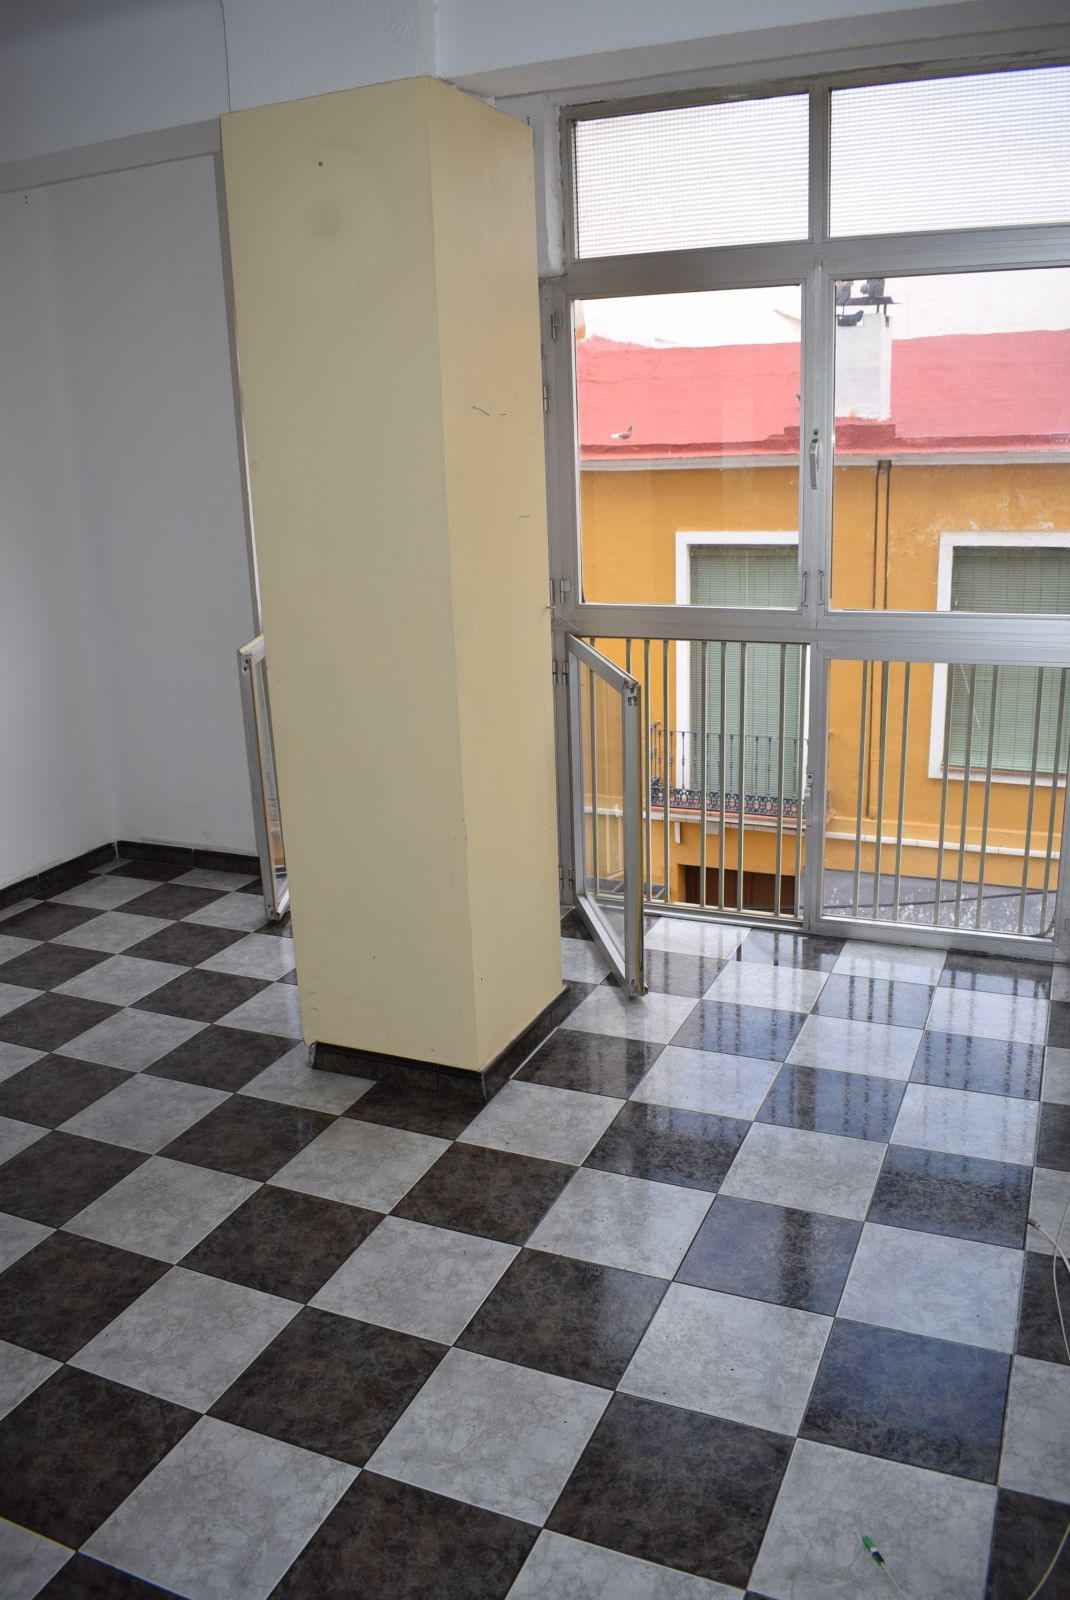 Middle Floor Apartment, Malaga only 1mn historic Centre, Costa del Sol. 2 Bedrooms, 1 Bathroom, Buil,Spain